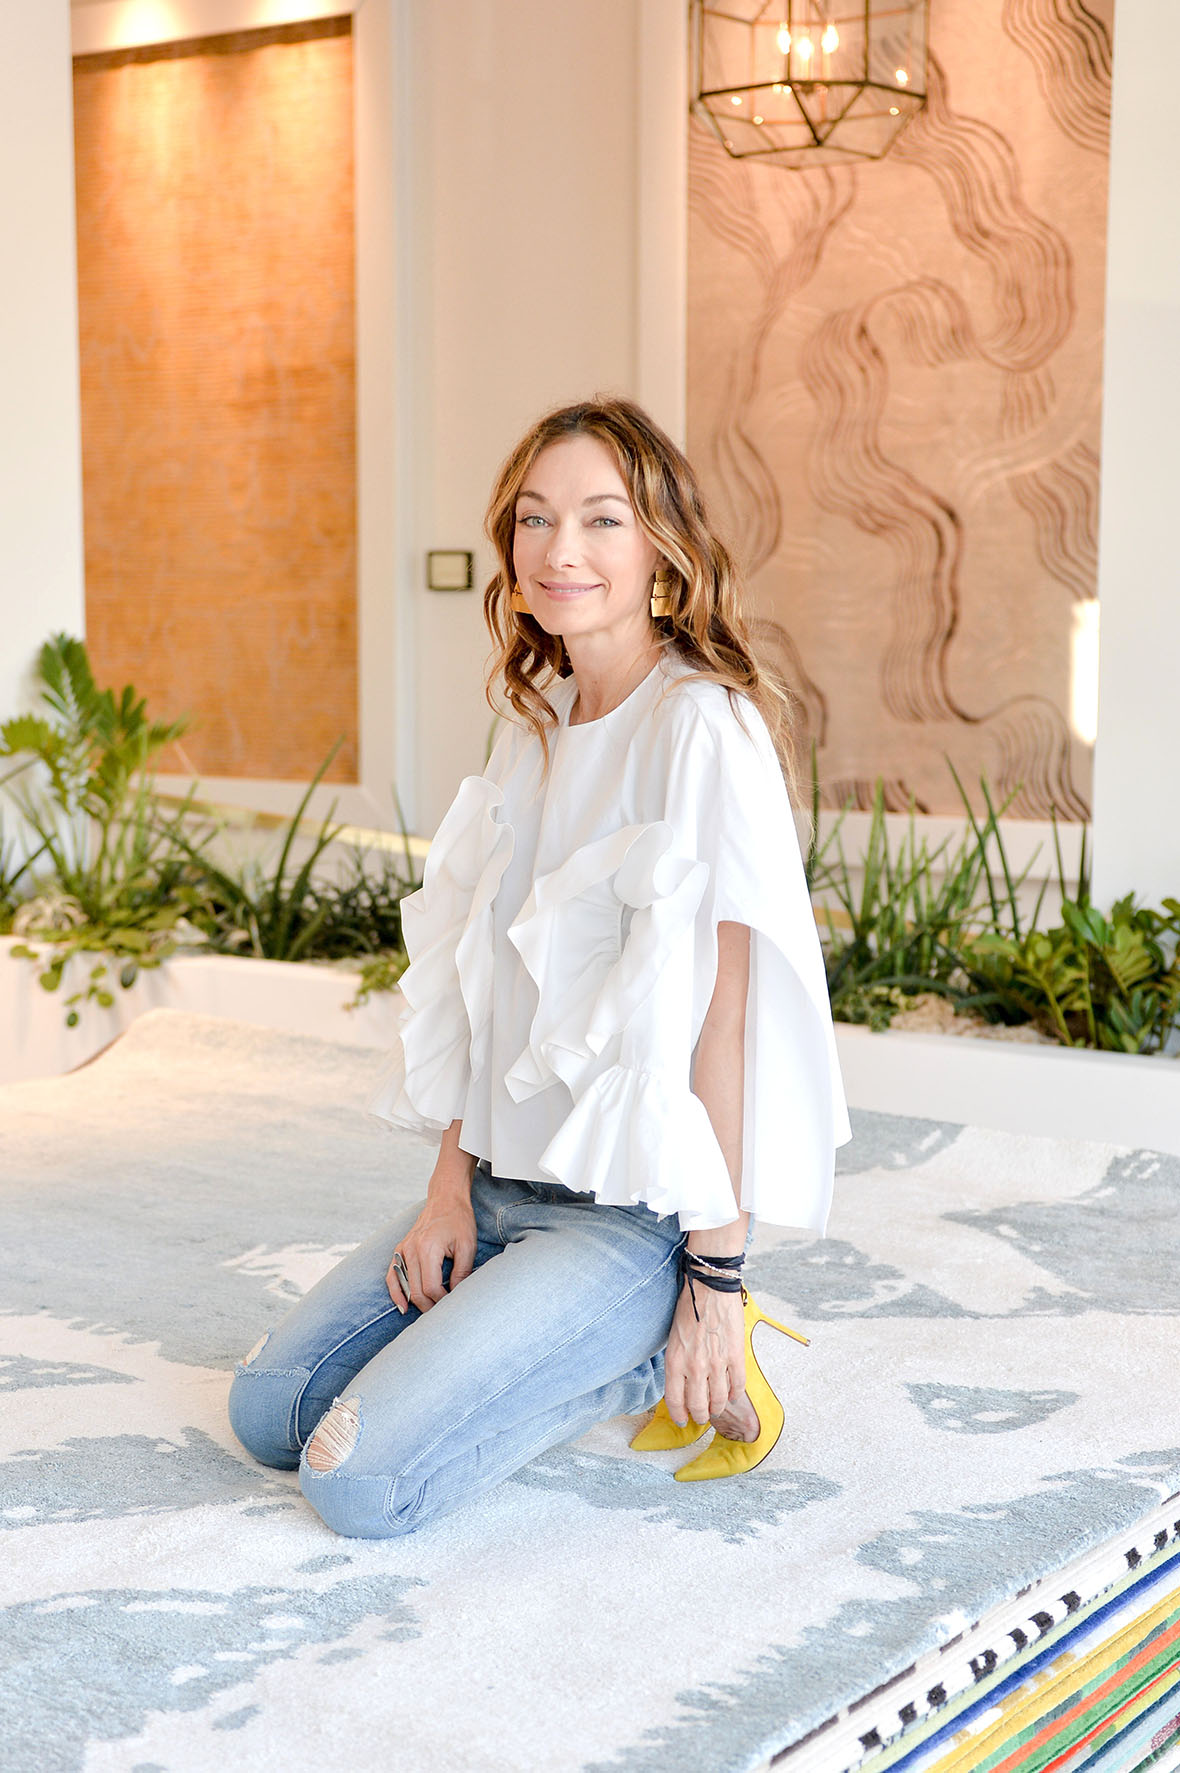 An Interview With Kelly Wearstler For The Rug Company